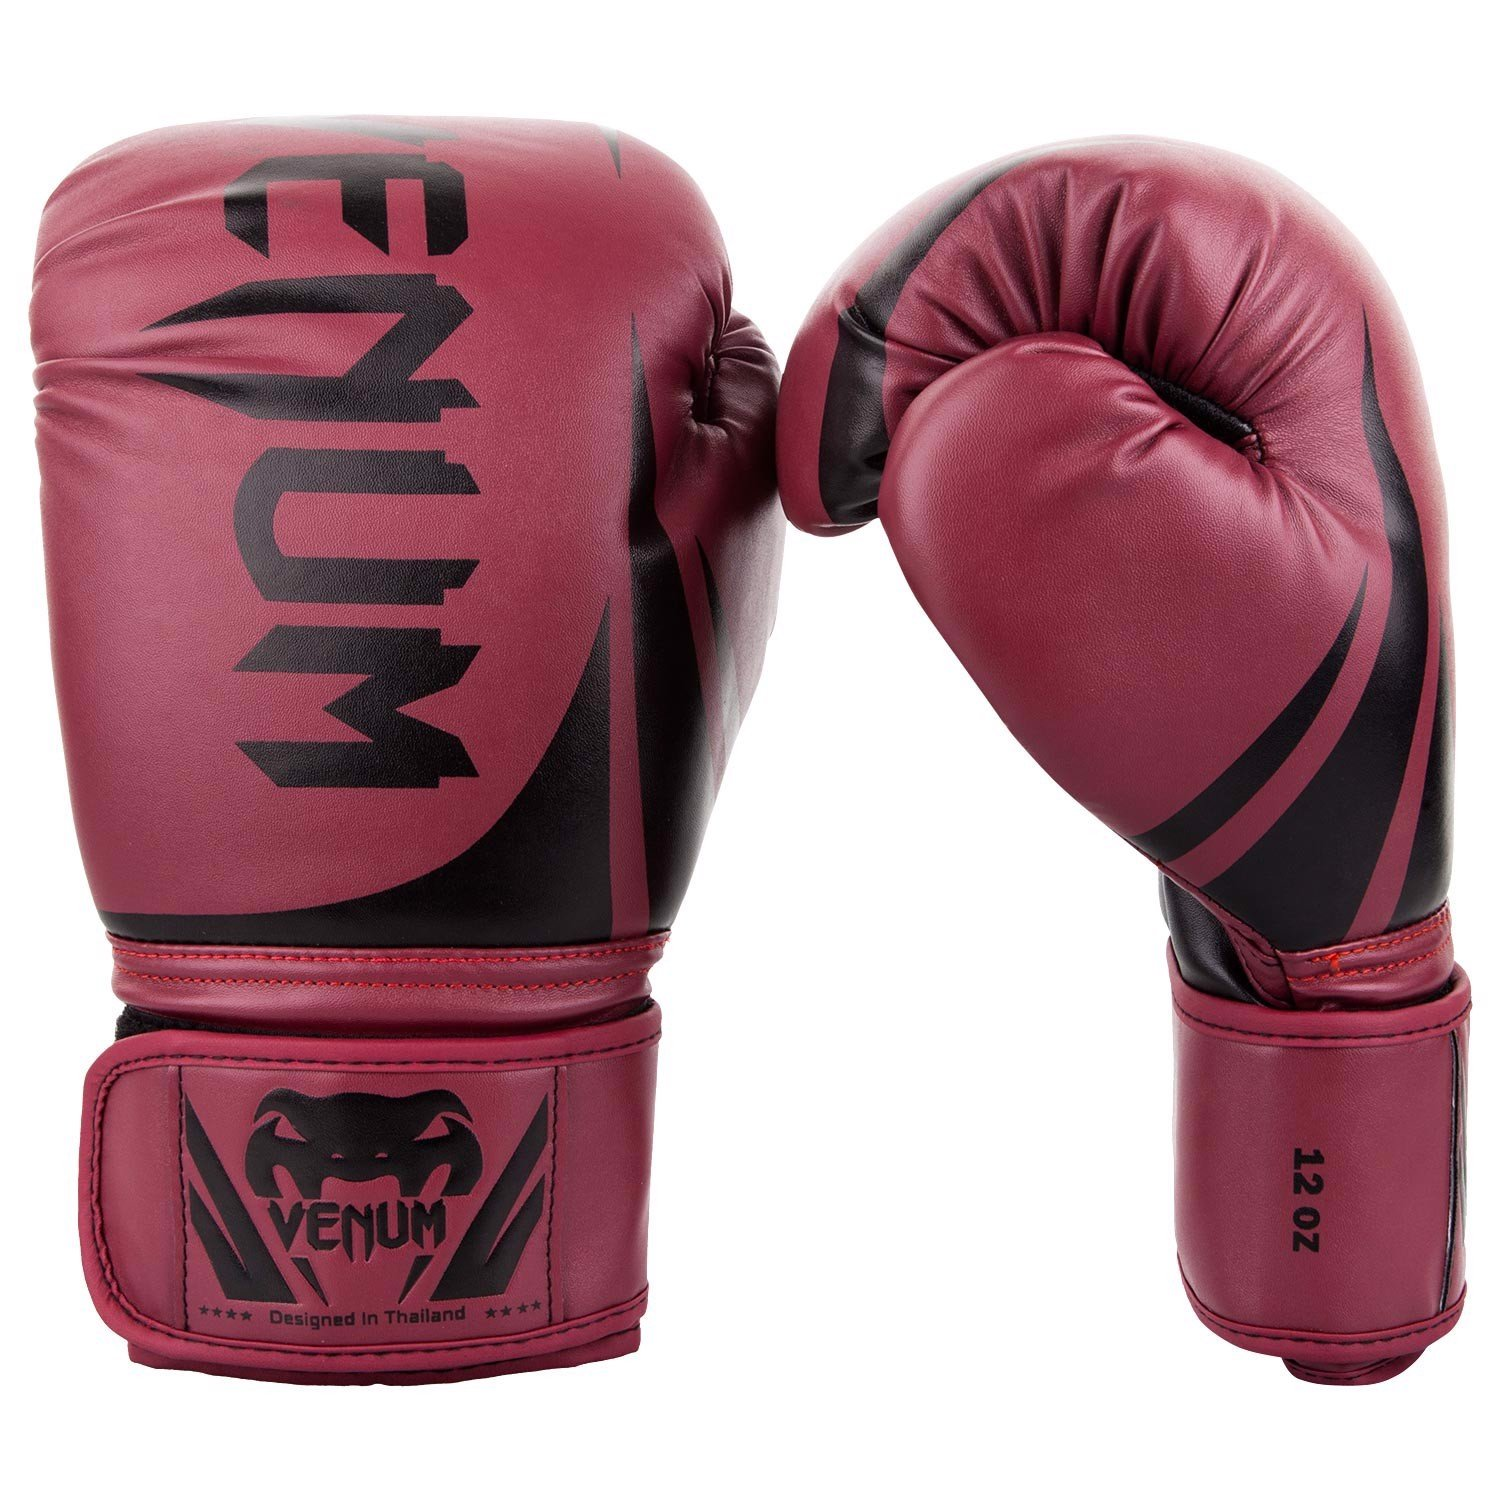 GĂNG TAY VENUM CHALLENGER 2.0 BOXING GLOVES - RED WINE/BLACK